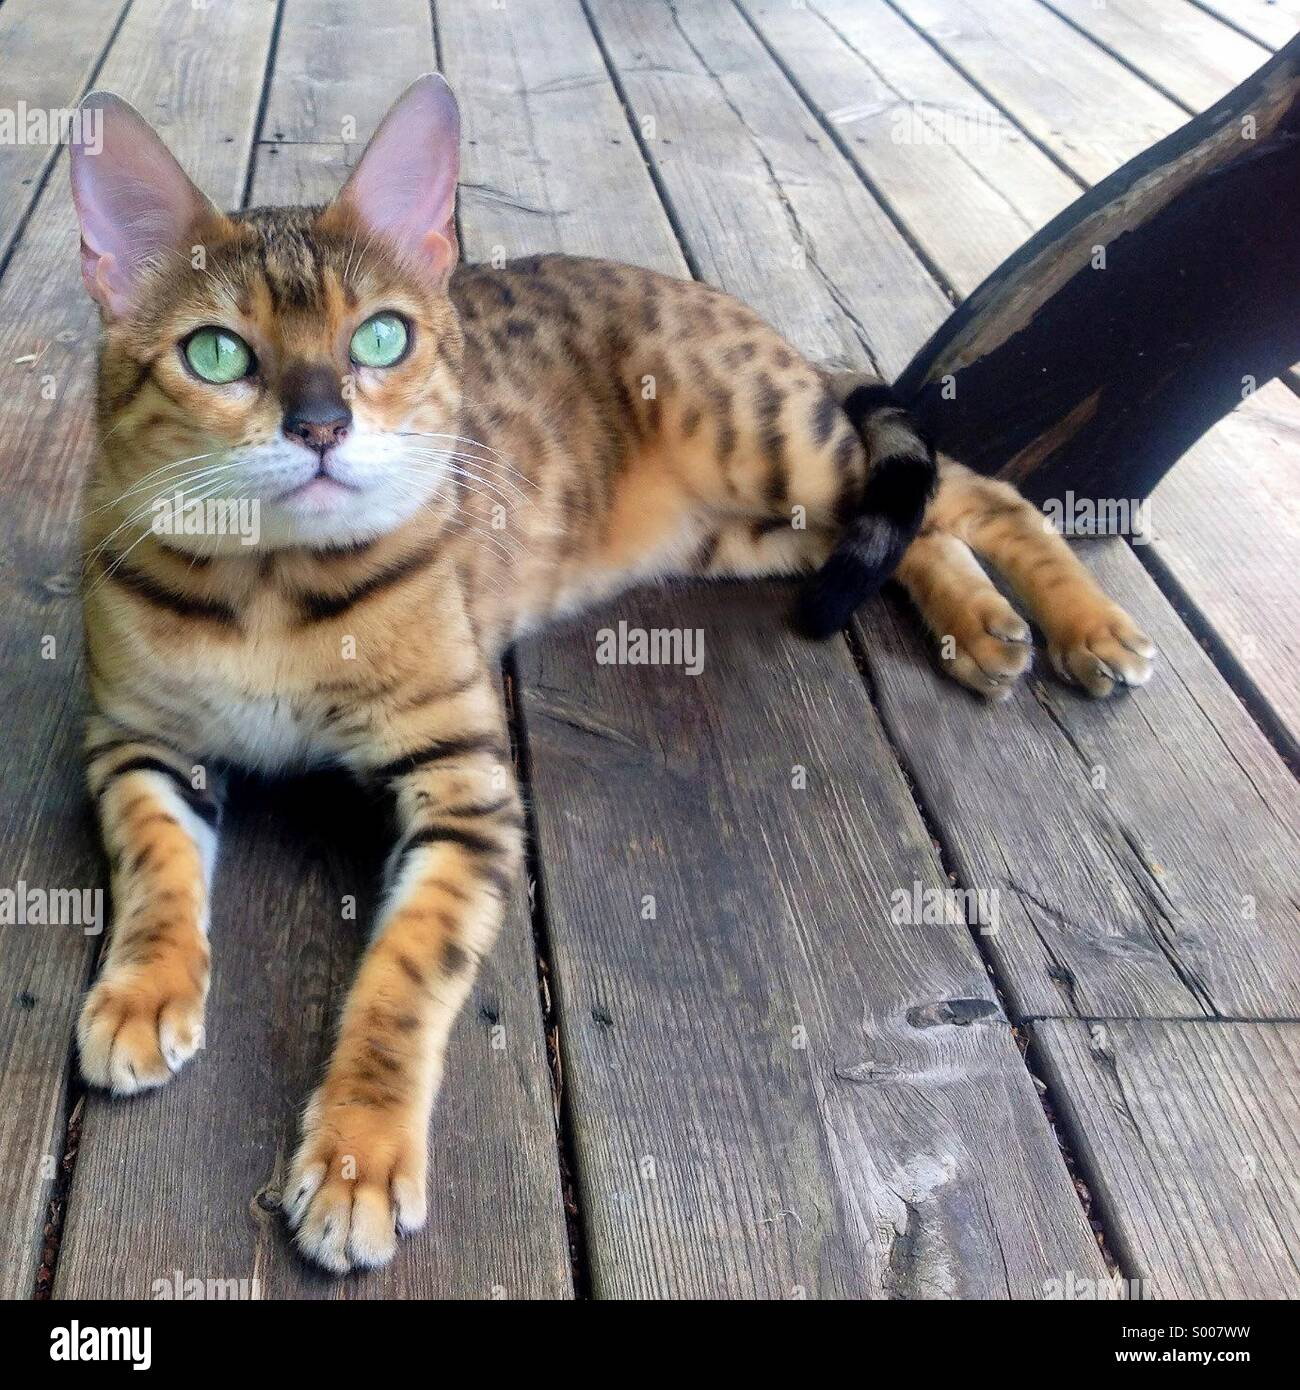 Bengal cat relaxing on the patio. - Stock Image